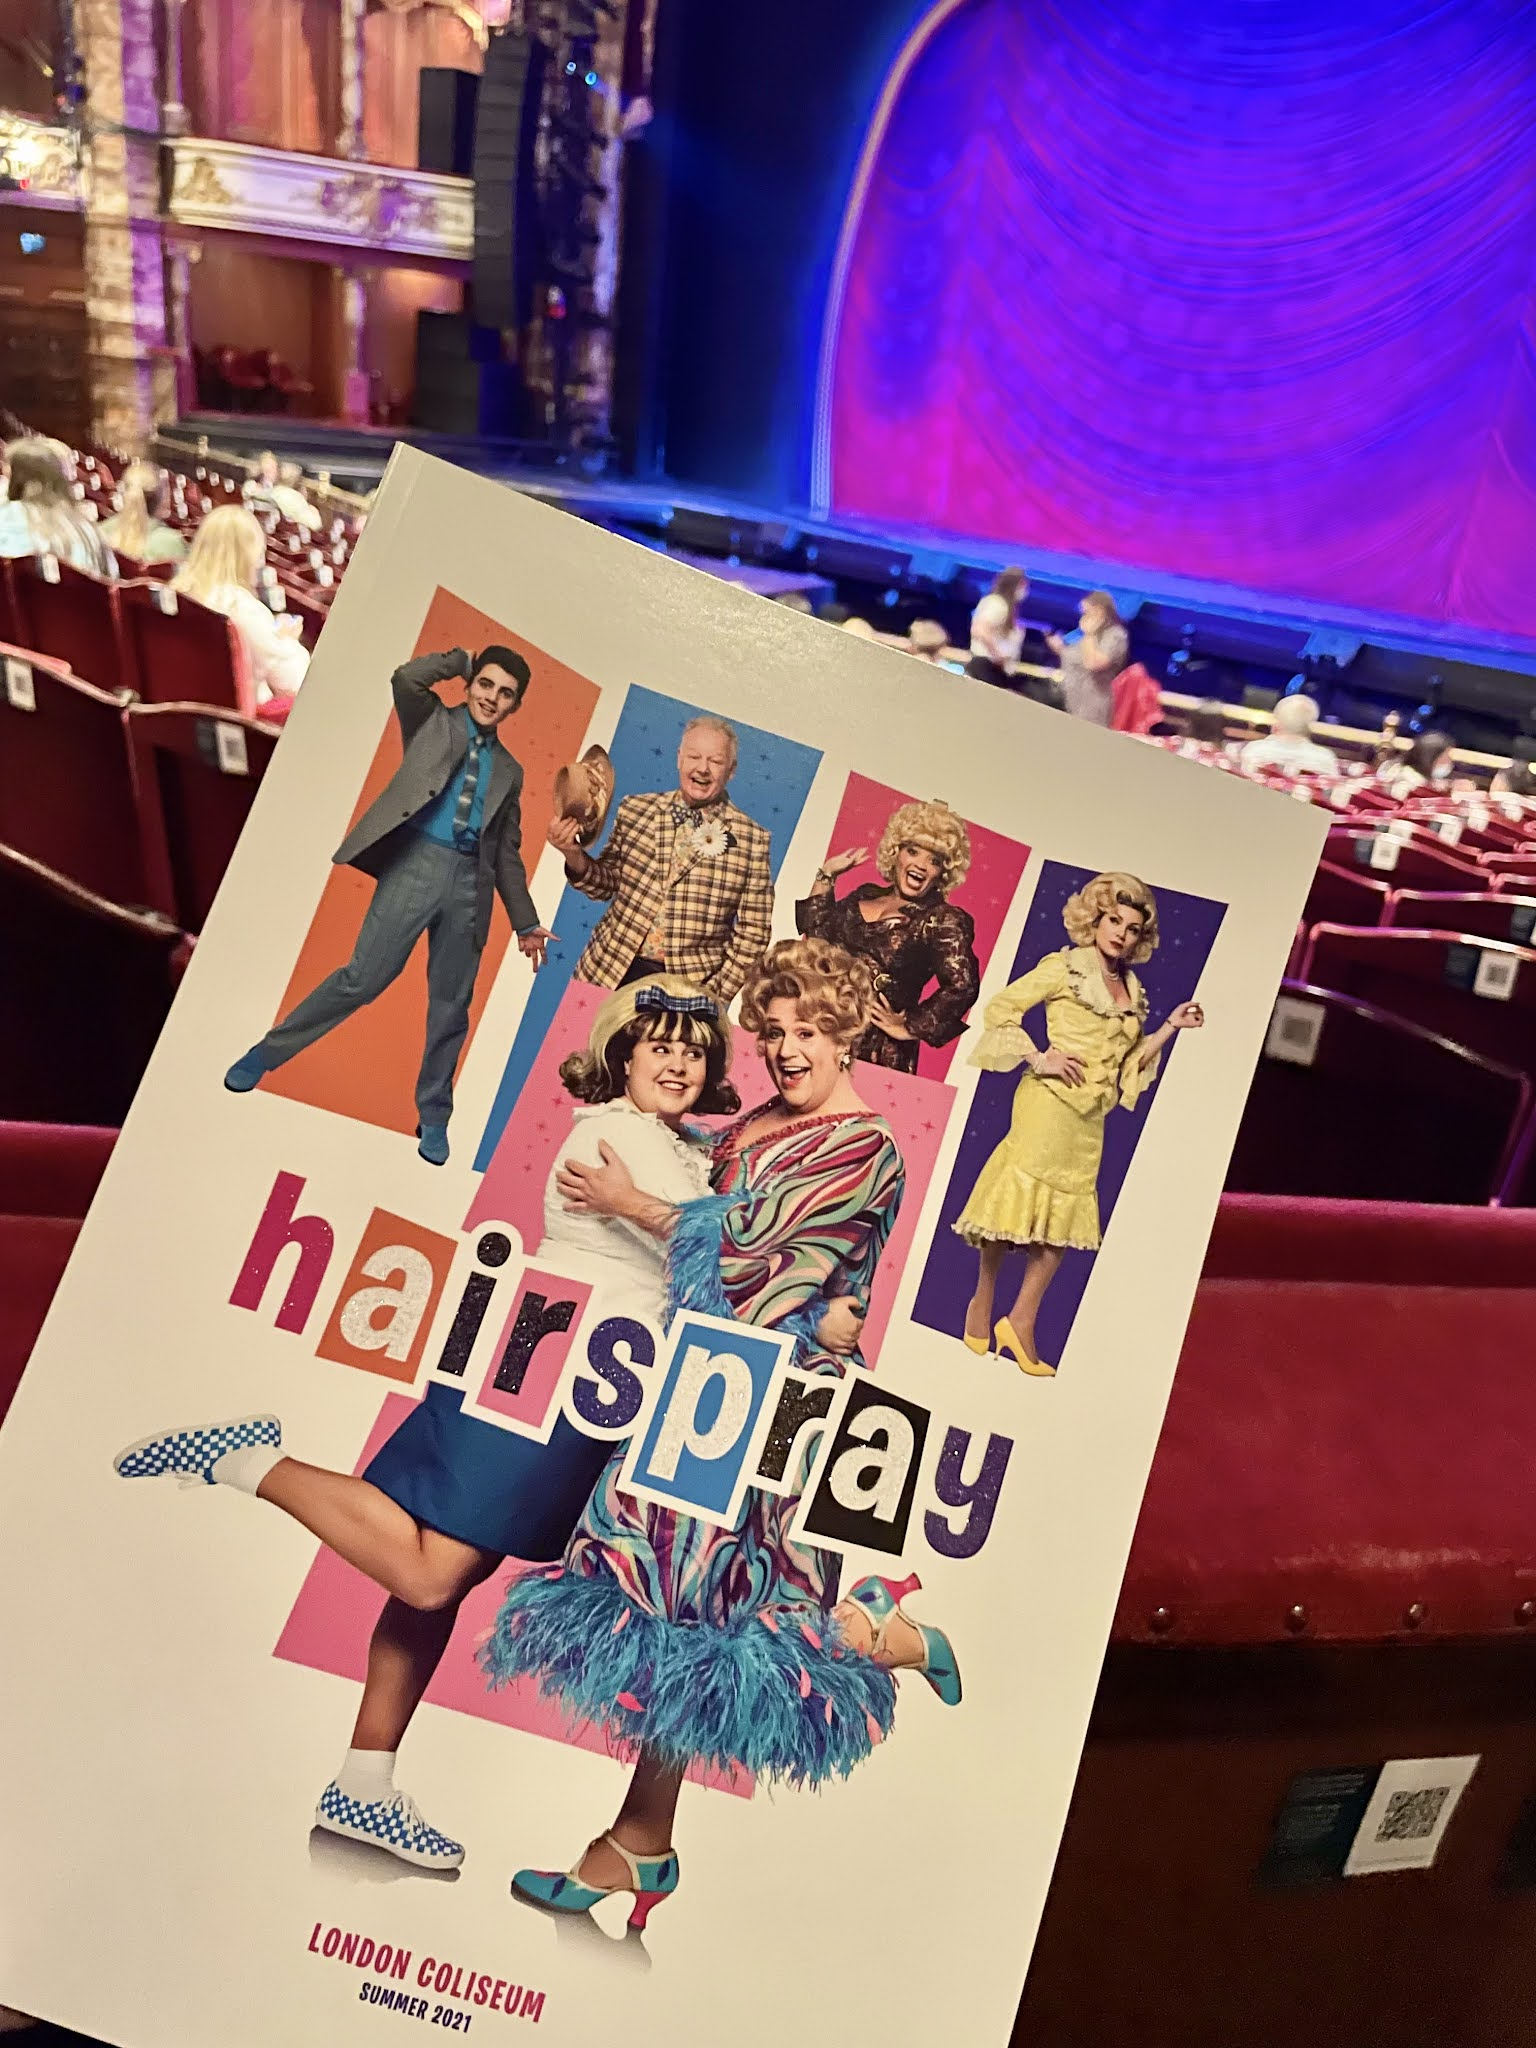 The programme for Hairspray the musical is building held up inside the theatre, the stage is lit up purple behind it.